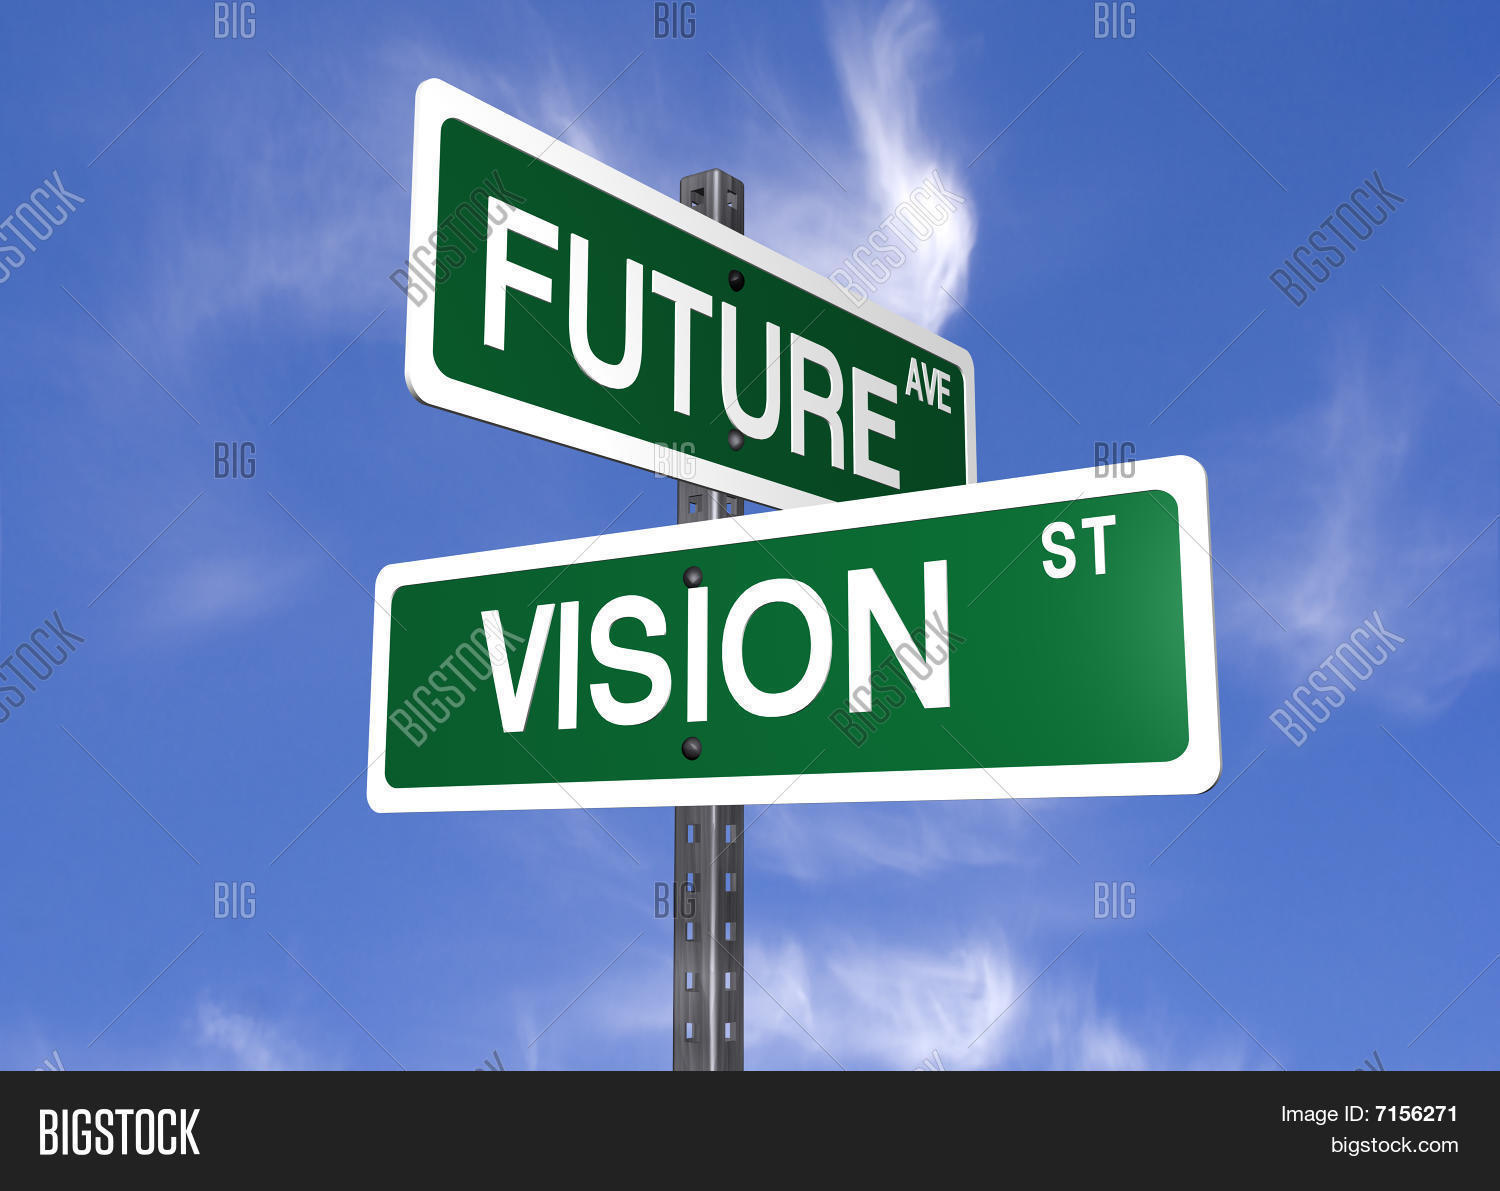 Future Vision Signs Image & Photo  Bigstock. Pillar Of Truth Bible Institute. Los Angeles Area Law Schools. Meaningful Use Registration Pmp Online Class. Santa Barbara Business College Student Portal. Best Alarm Security System Best Spy Software. Cedar Park Pest Control Henderson Nv Locksmith. St Jude Medical Spinal Cord Stimulator. When Did Electronic Health Records Begin